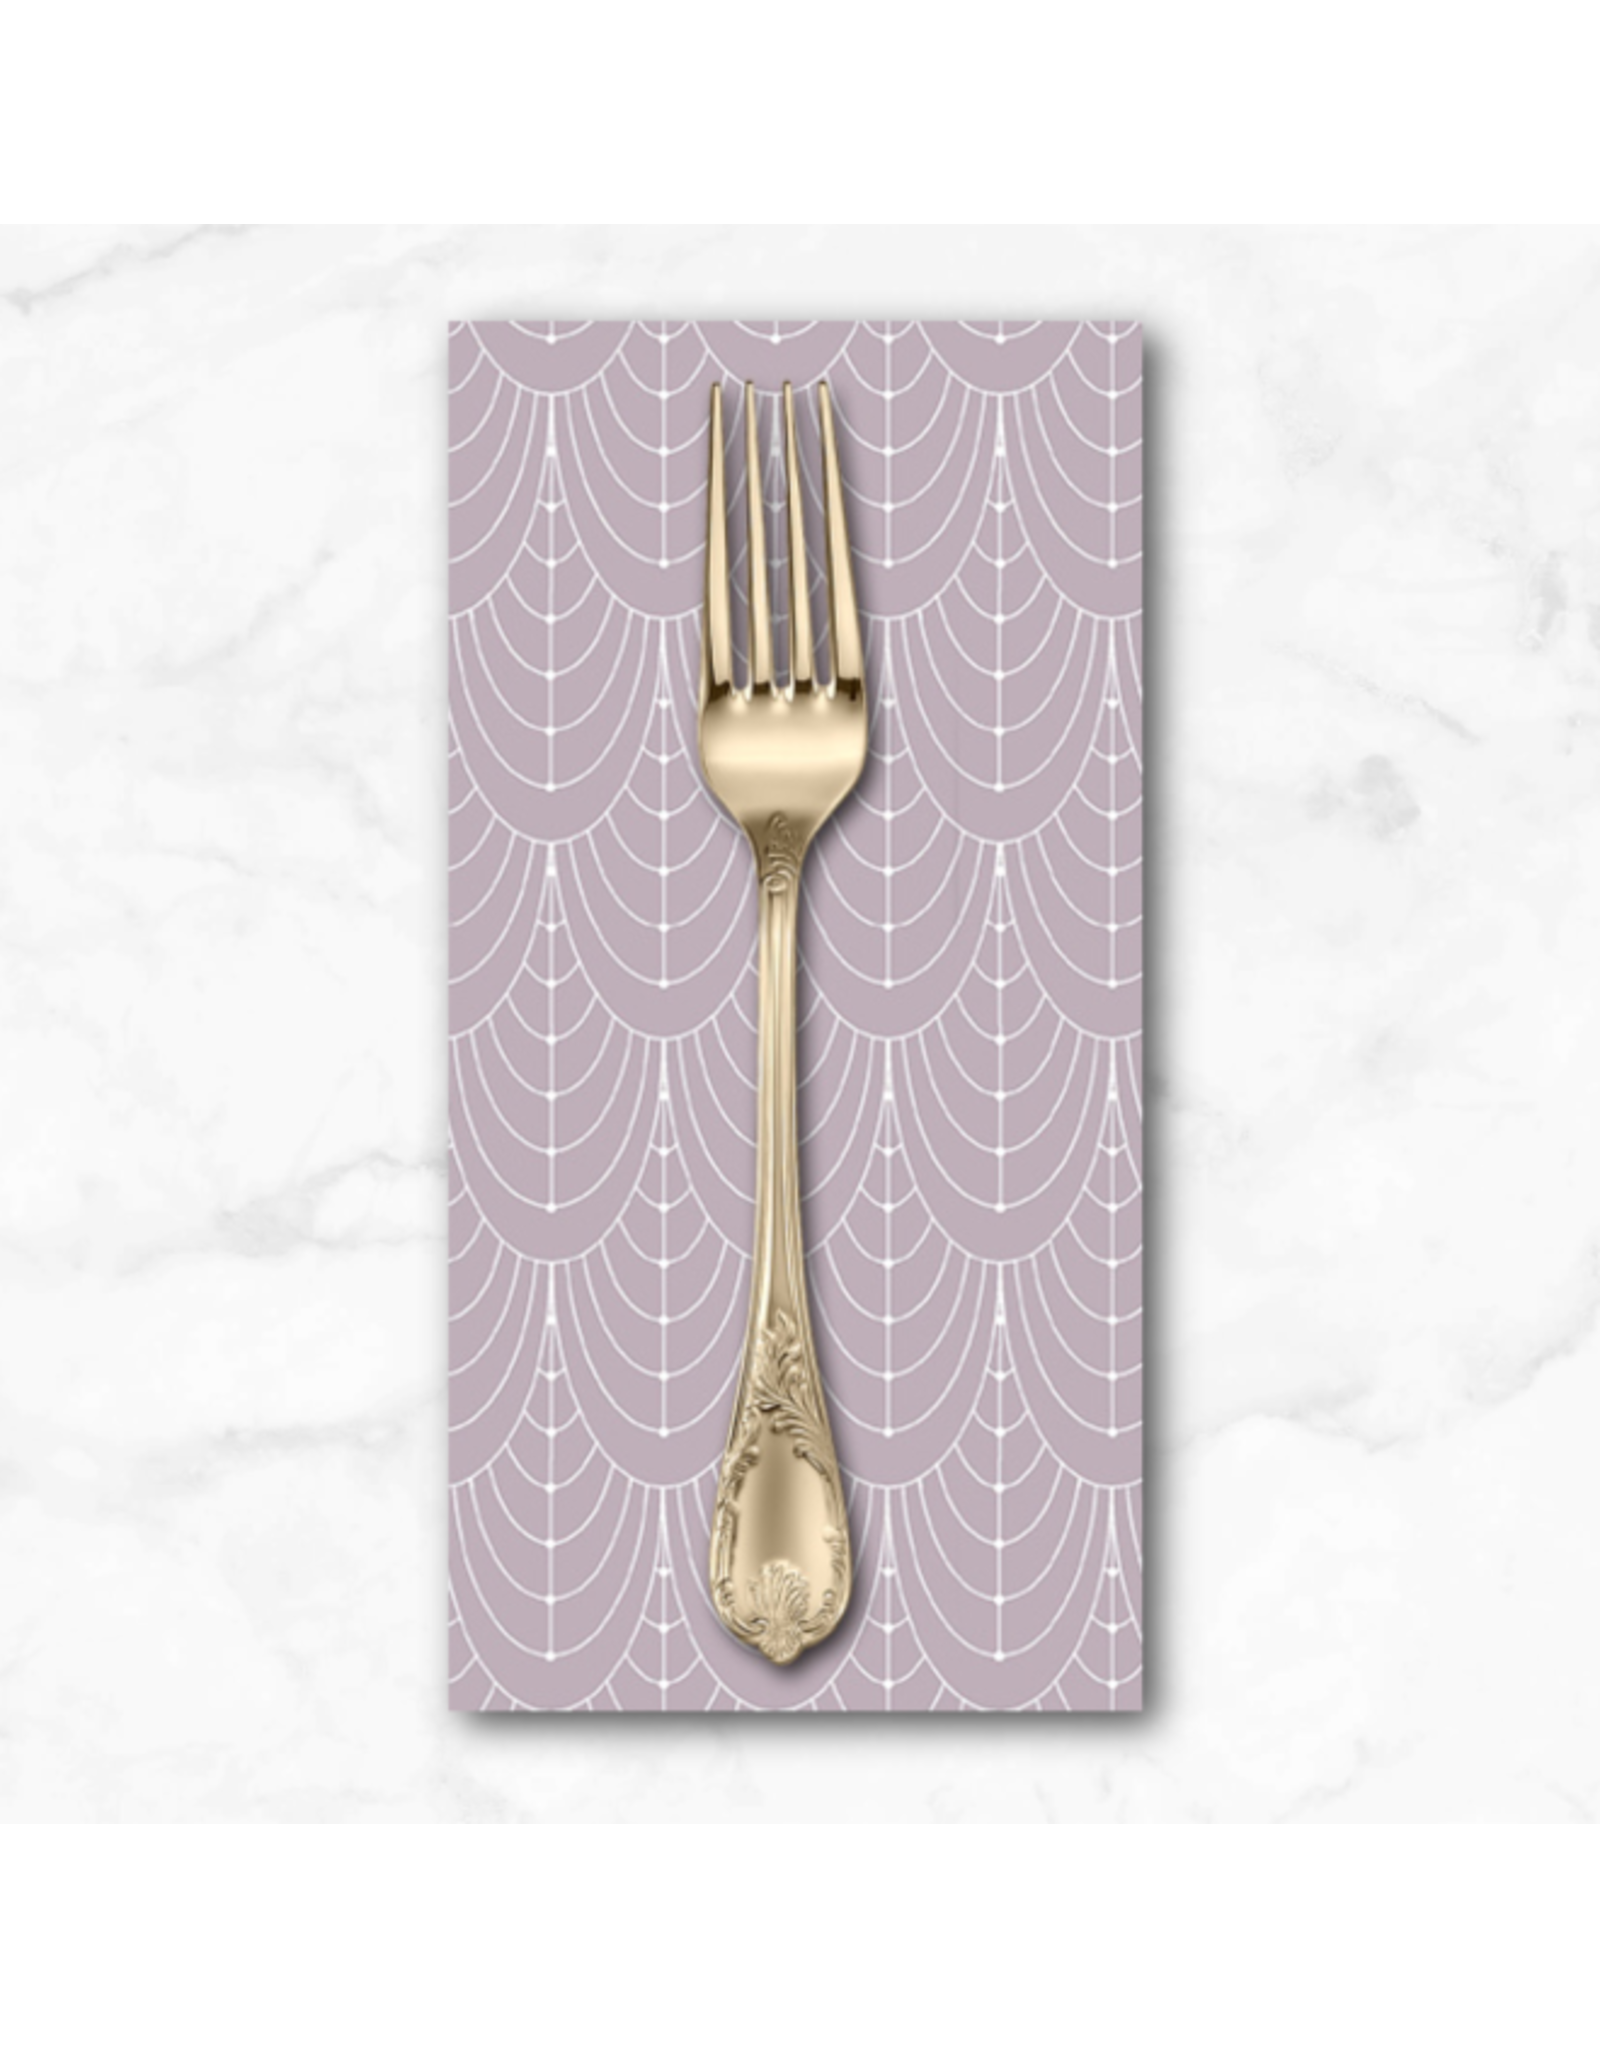 PD's Giucy Giuce Collection Century Prints, Deco Curtains in Whisper, Dinner Napkin